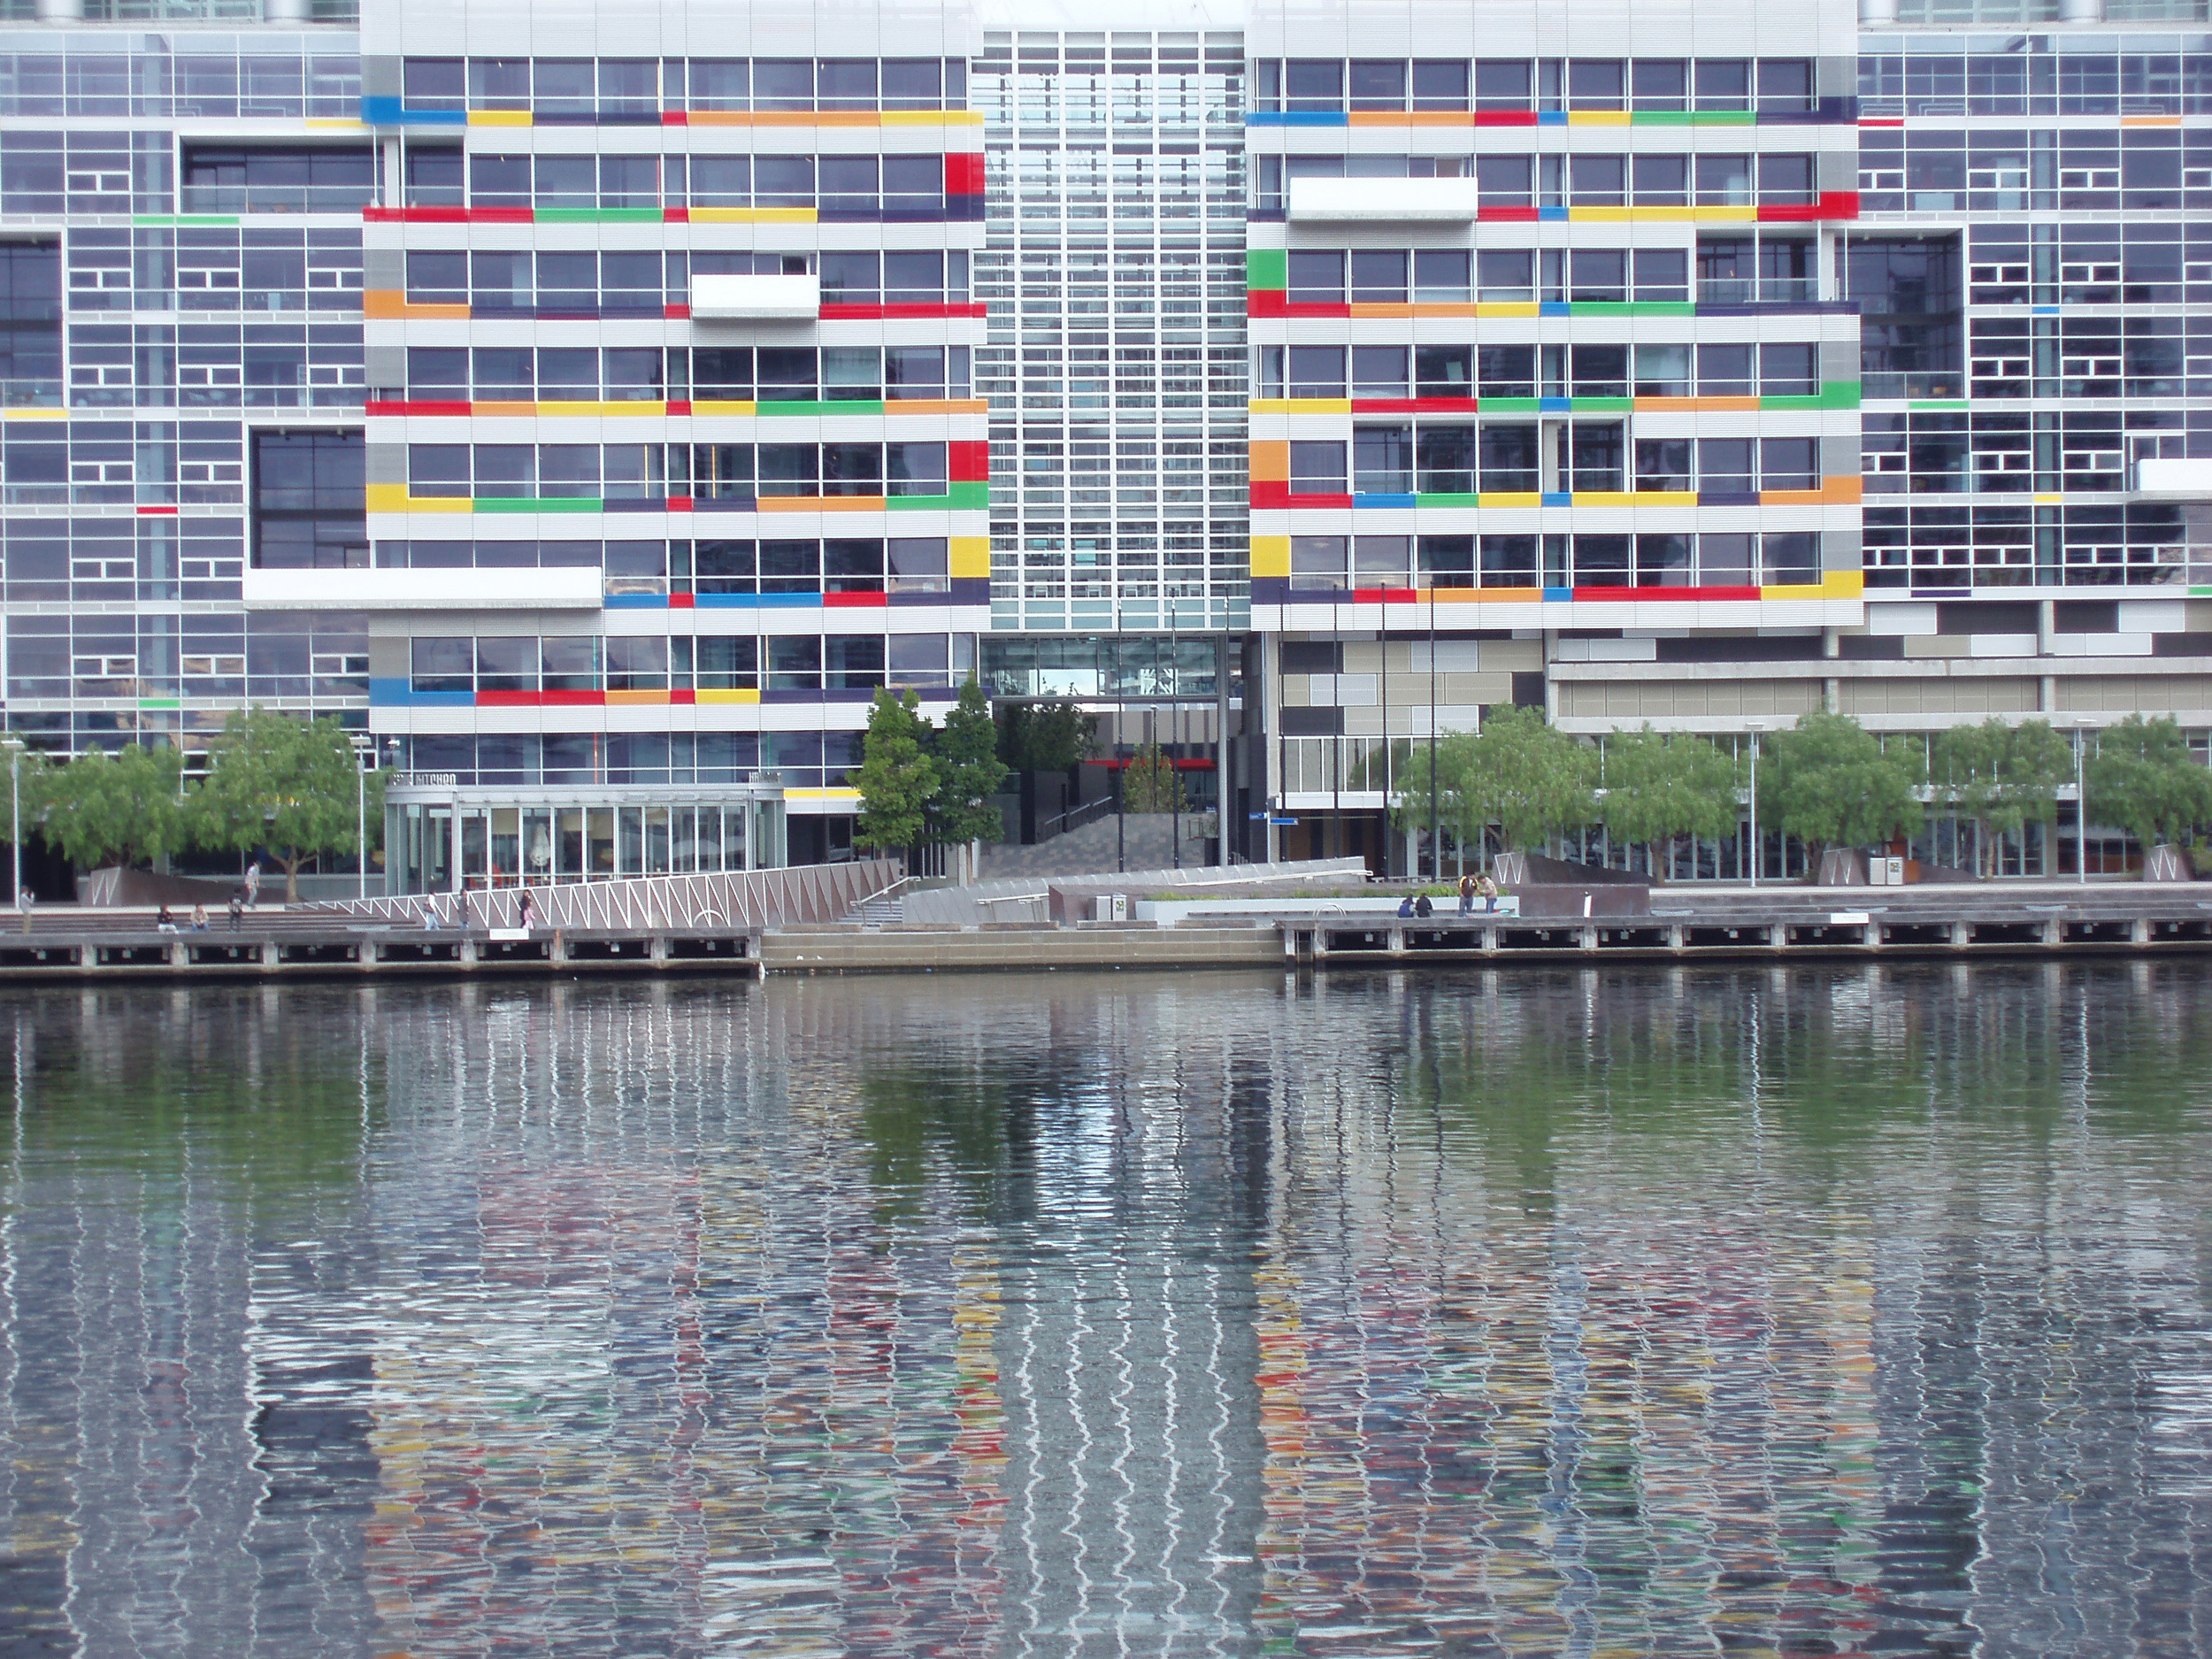 Photo Of Docklands Modern Buildings